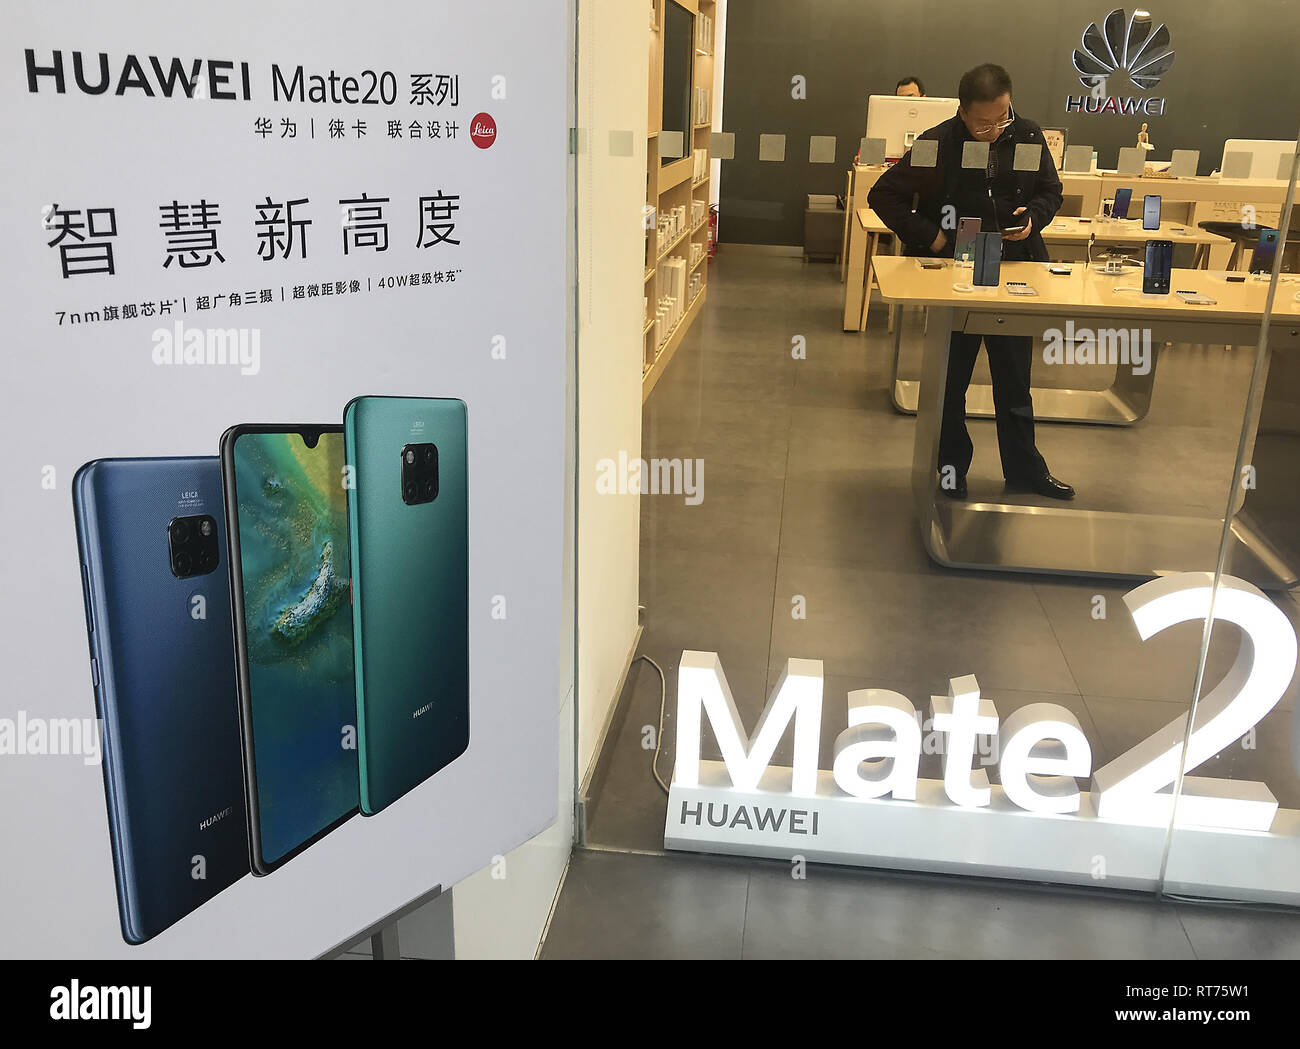 December 10, 2018 - Beijing, China - A Chinese man shops in a Huawei